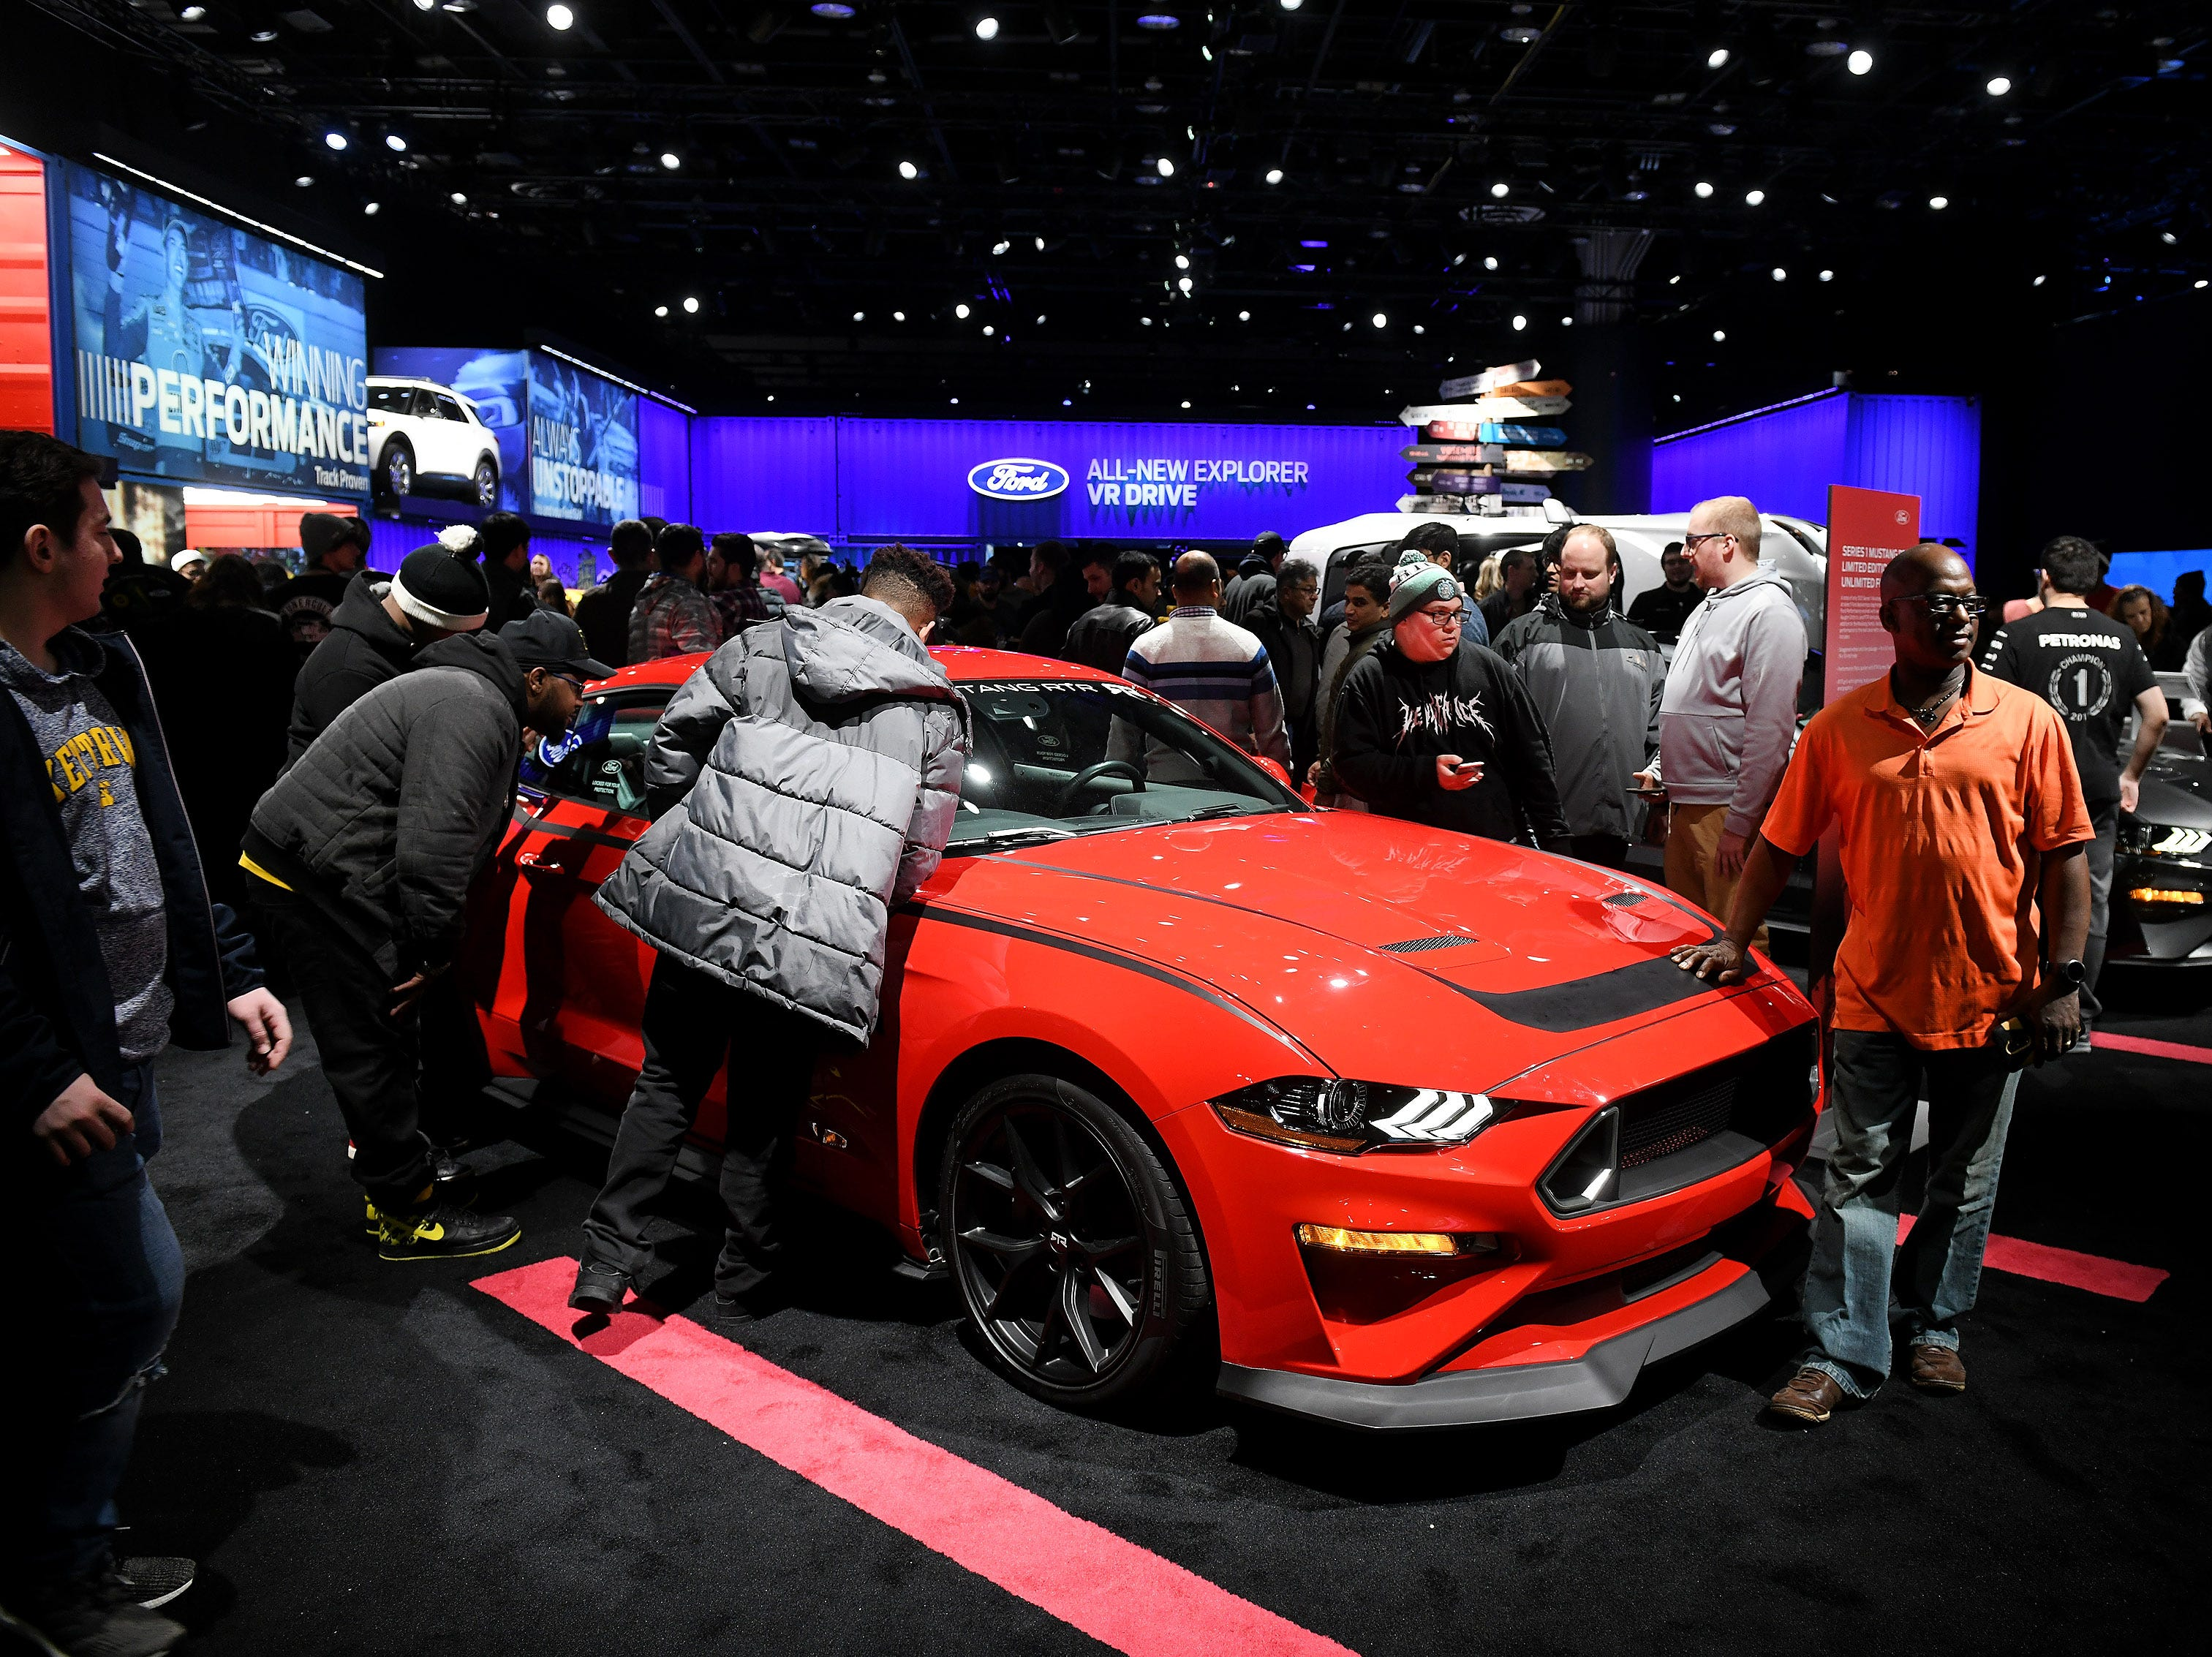 Oscar Murdock, right, of Flint poses with a Mustang RTR while his wife, Jessie, out of the frame, takes a photo.